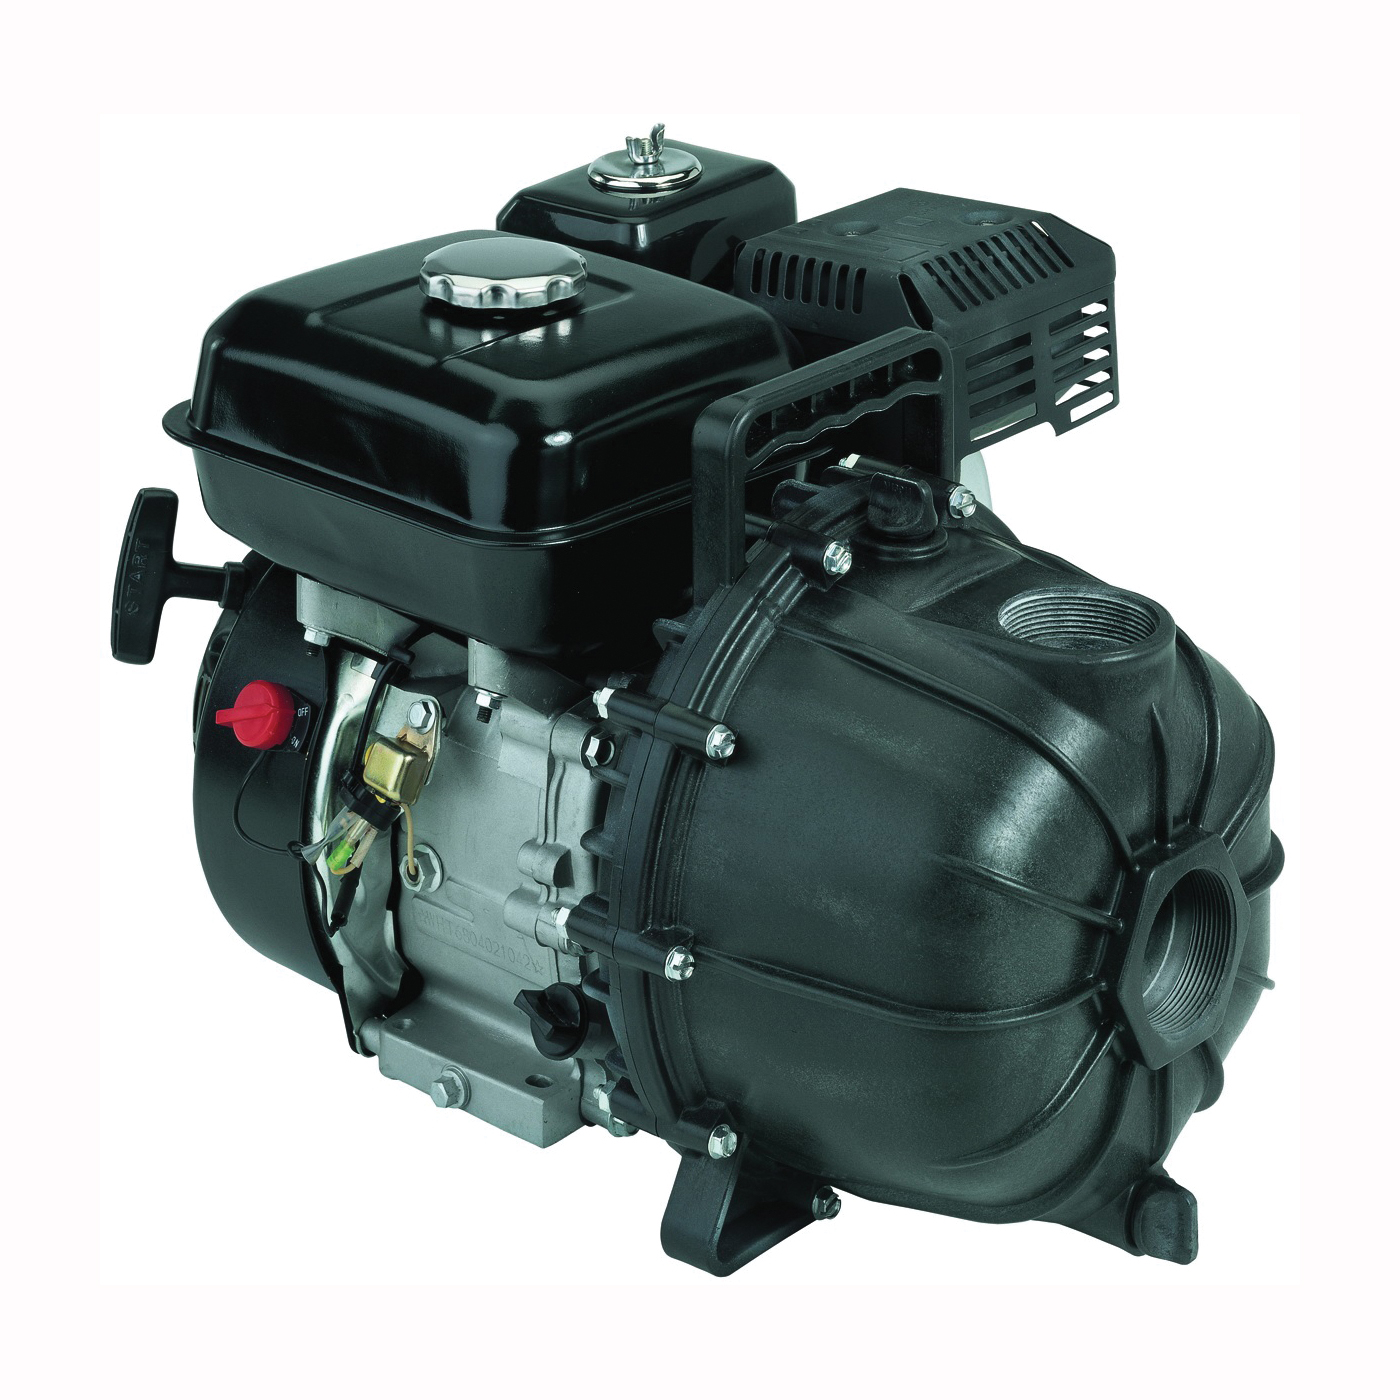 Picture of Flotec FP5455 Gas Engine Pump, 6.5 hp, 2 in Outlet, 144 gpm, Thermoplastic